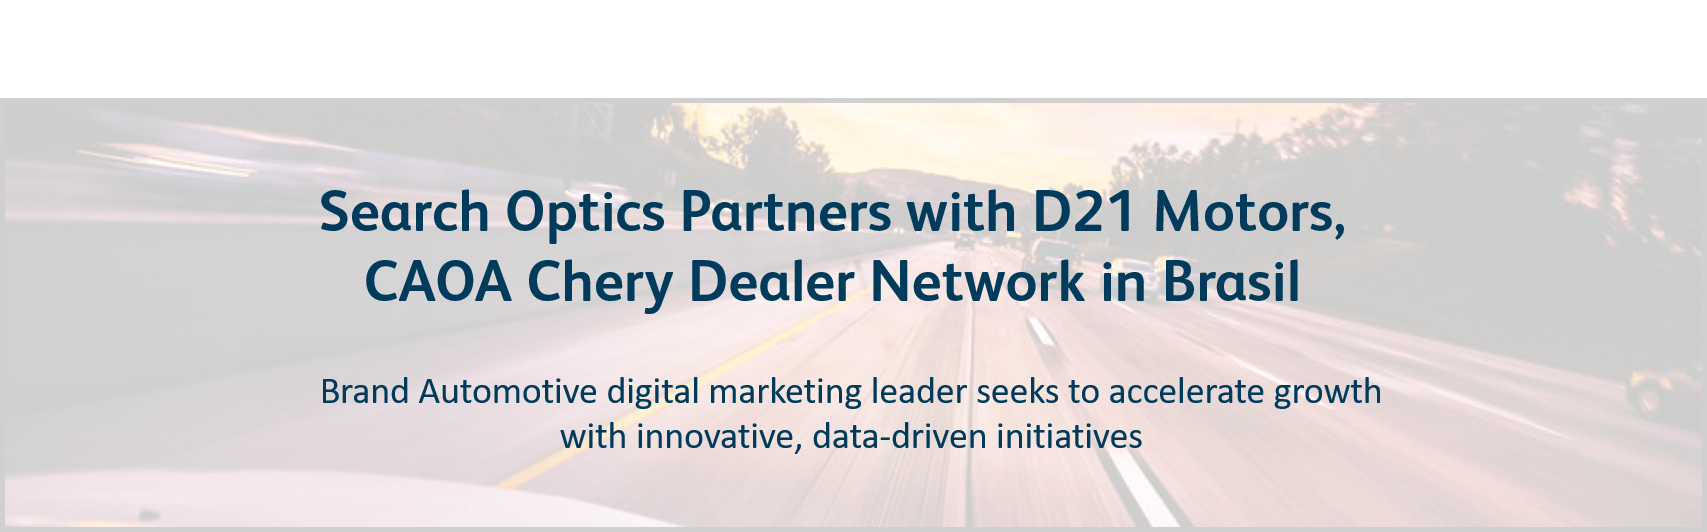 Search Optics Selected to Optimise Digital Marketing for D21 Motors, CAOA Chery Dealer Network in Brasil